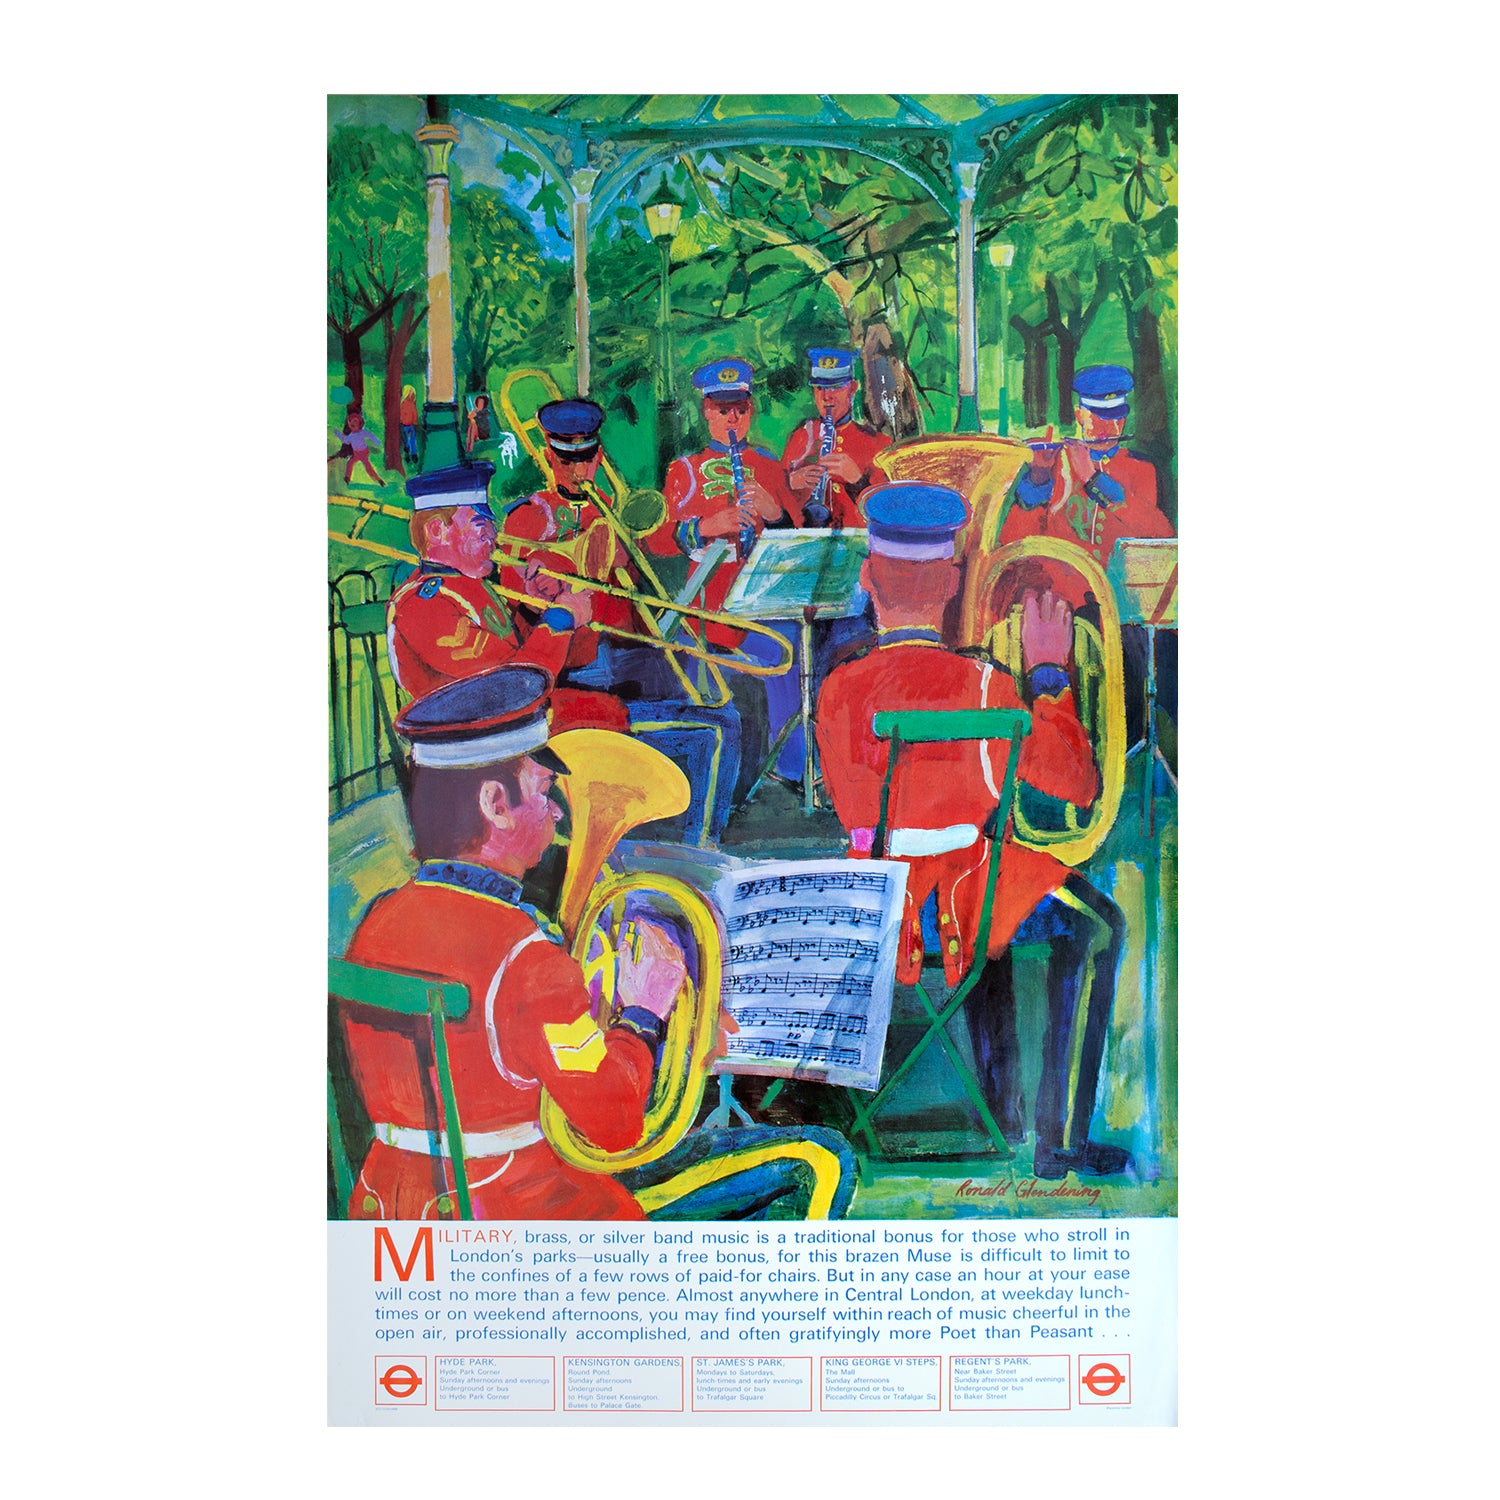 Military Brass Bands/London Parks